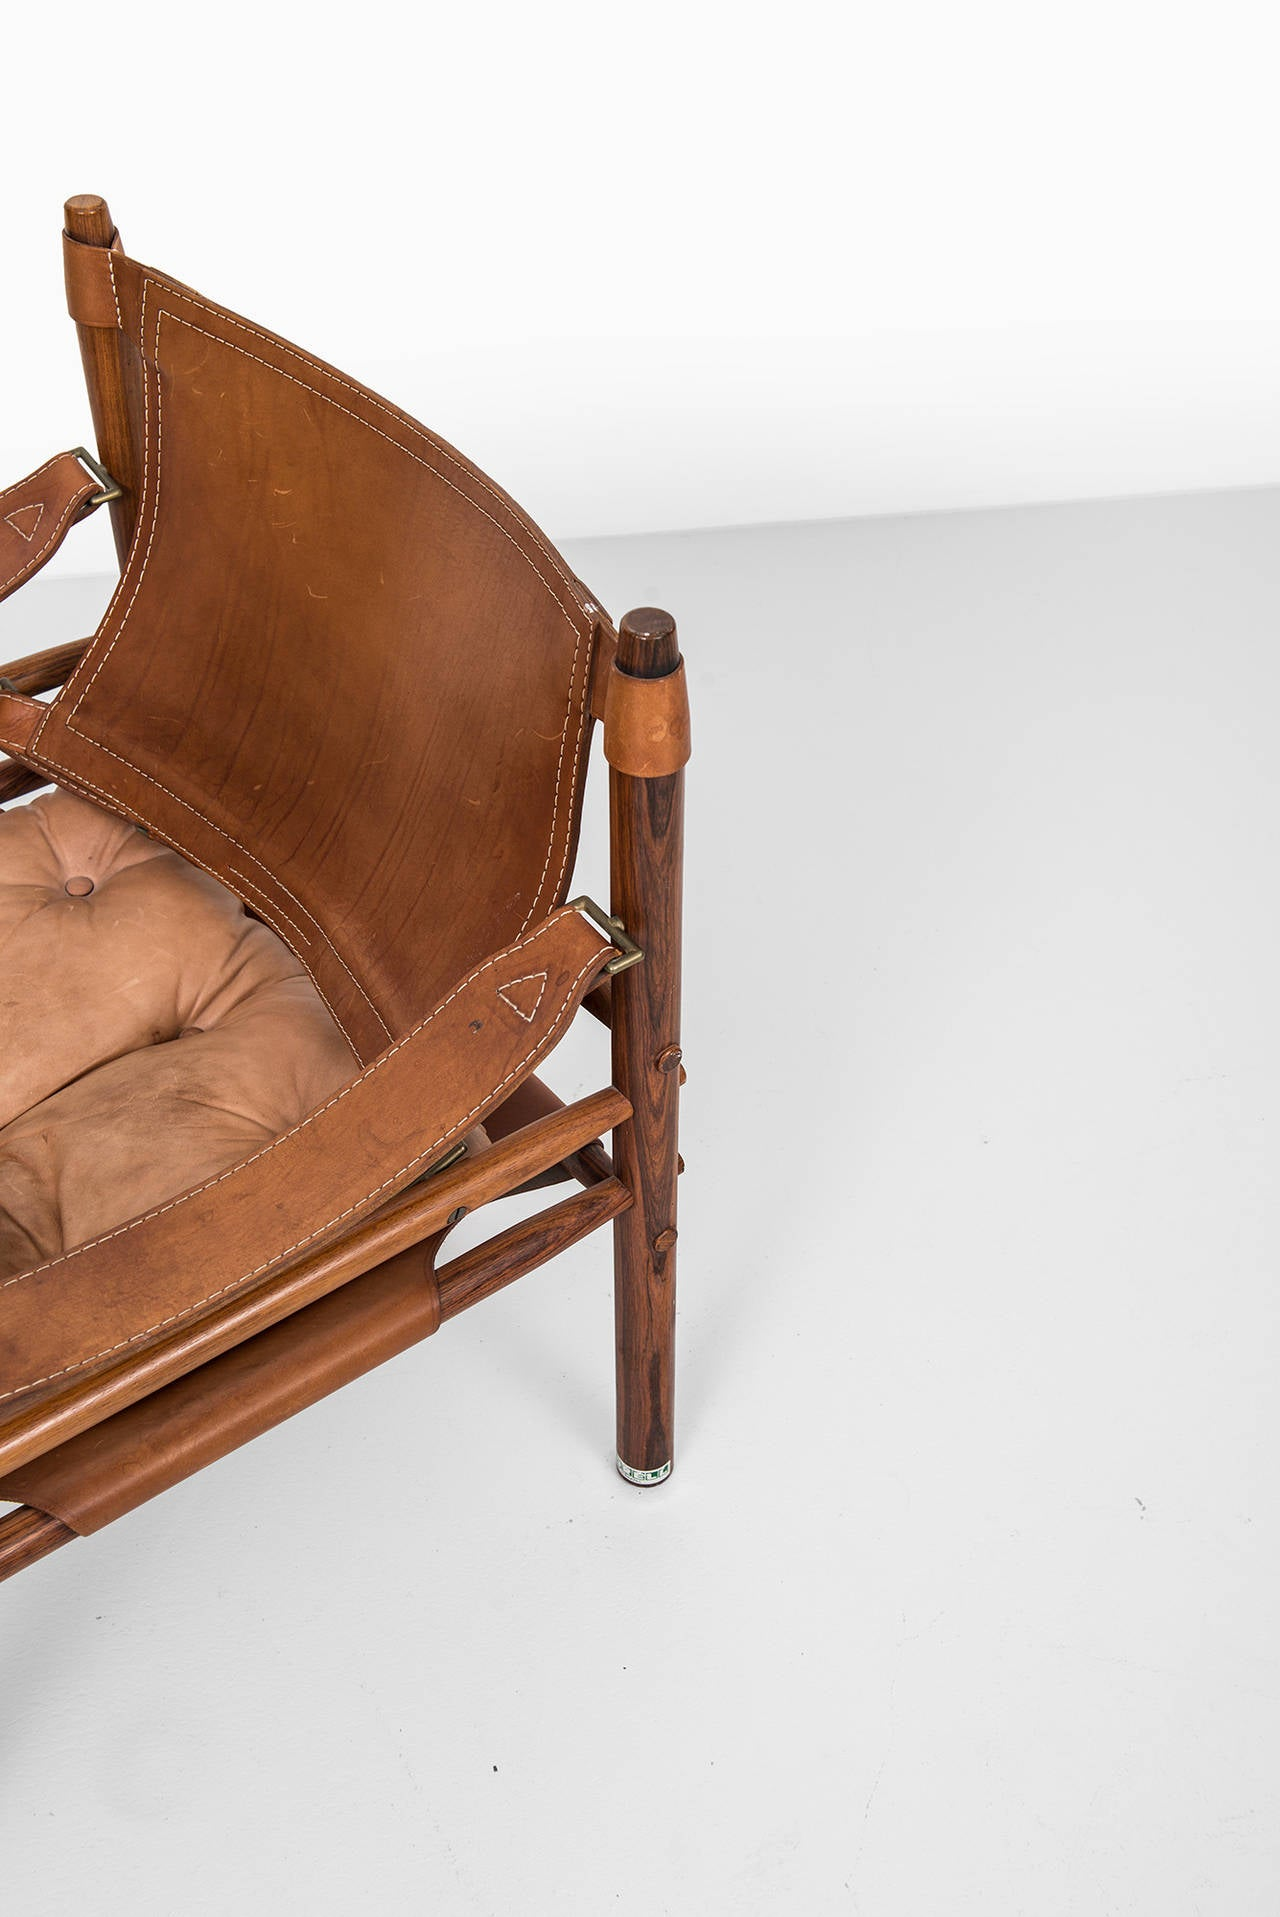 Arne Norell Sirocco Easy Chairs in Rosewood by Arne Norell AB in Sweden In Excellent Condition For Sale In Malmo, SE